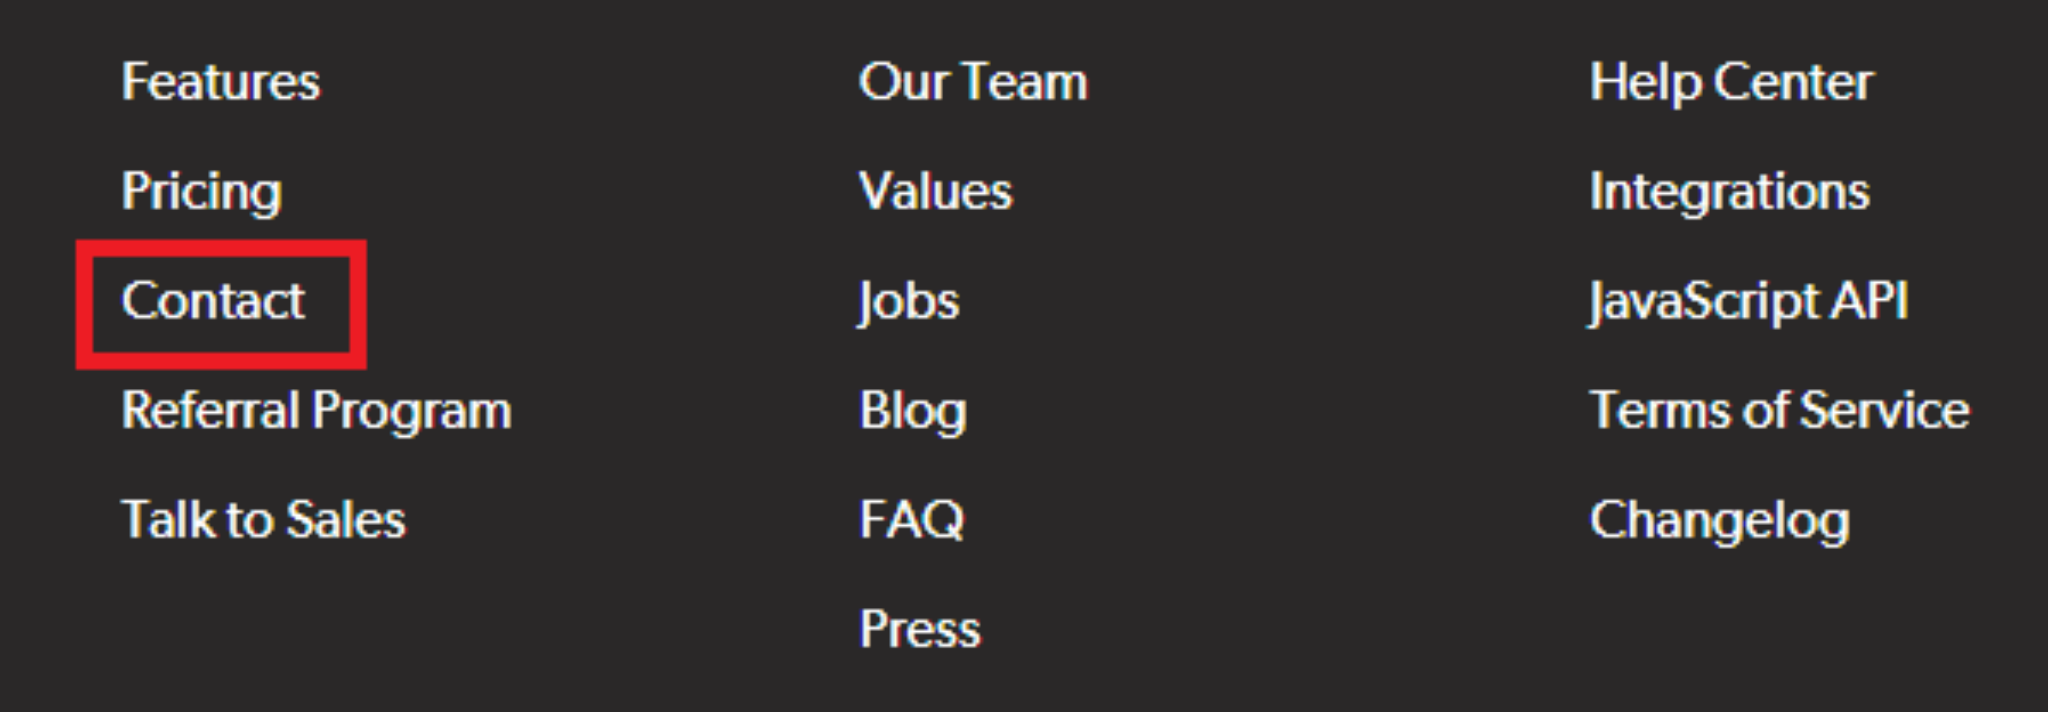 Sample footer menu with only place to Contact